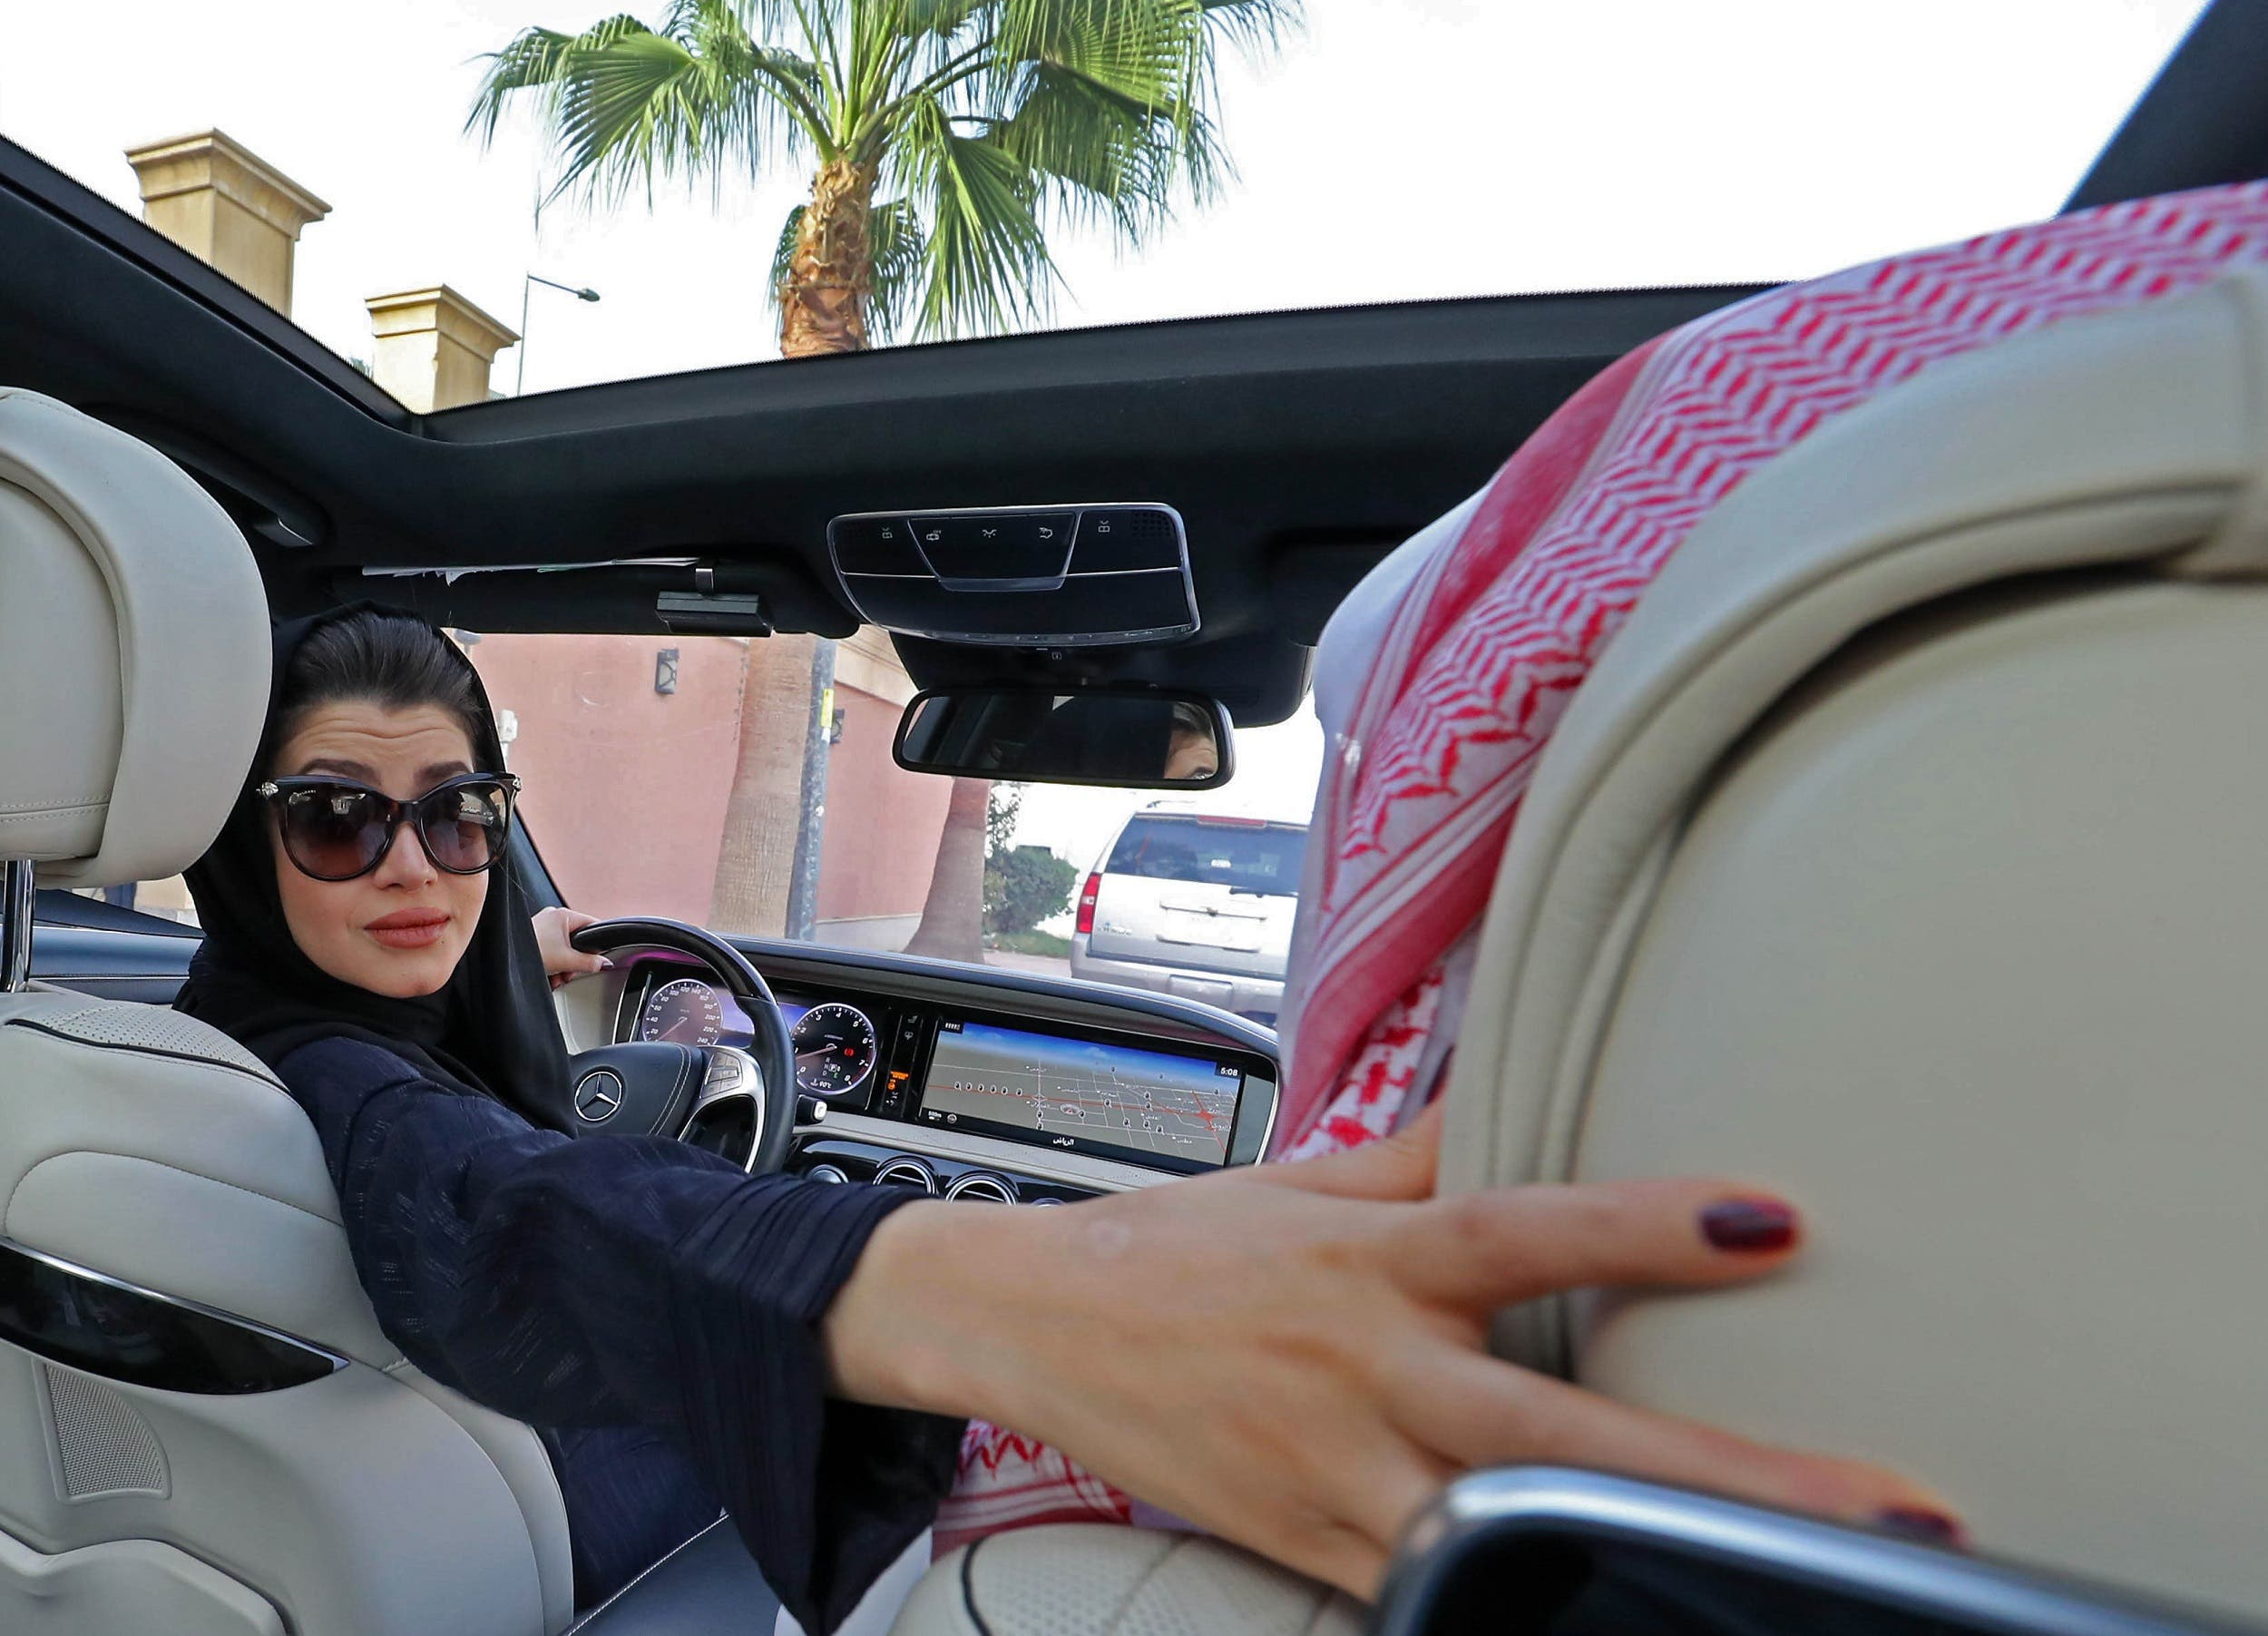 A Saudi woman practices driving in Riyadh, on April 29, 2018. (AFP)